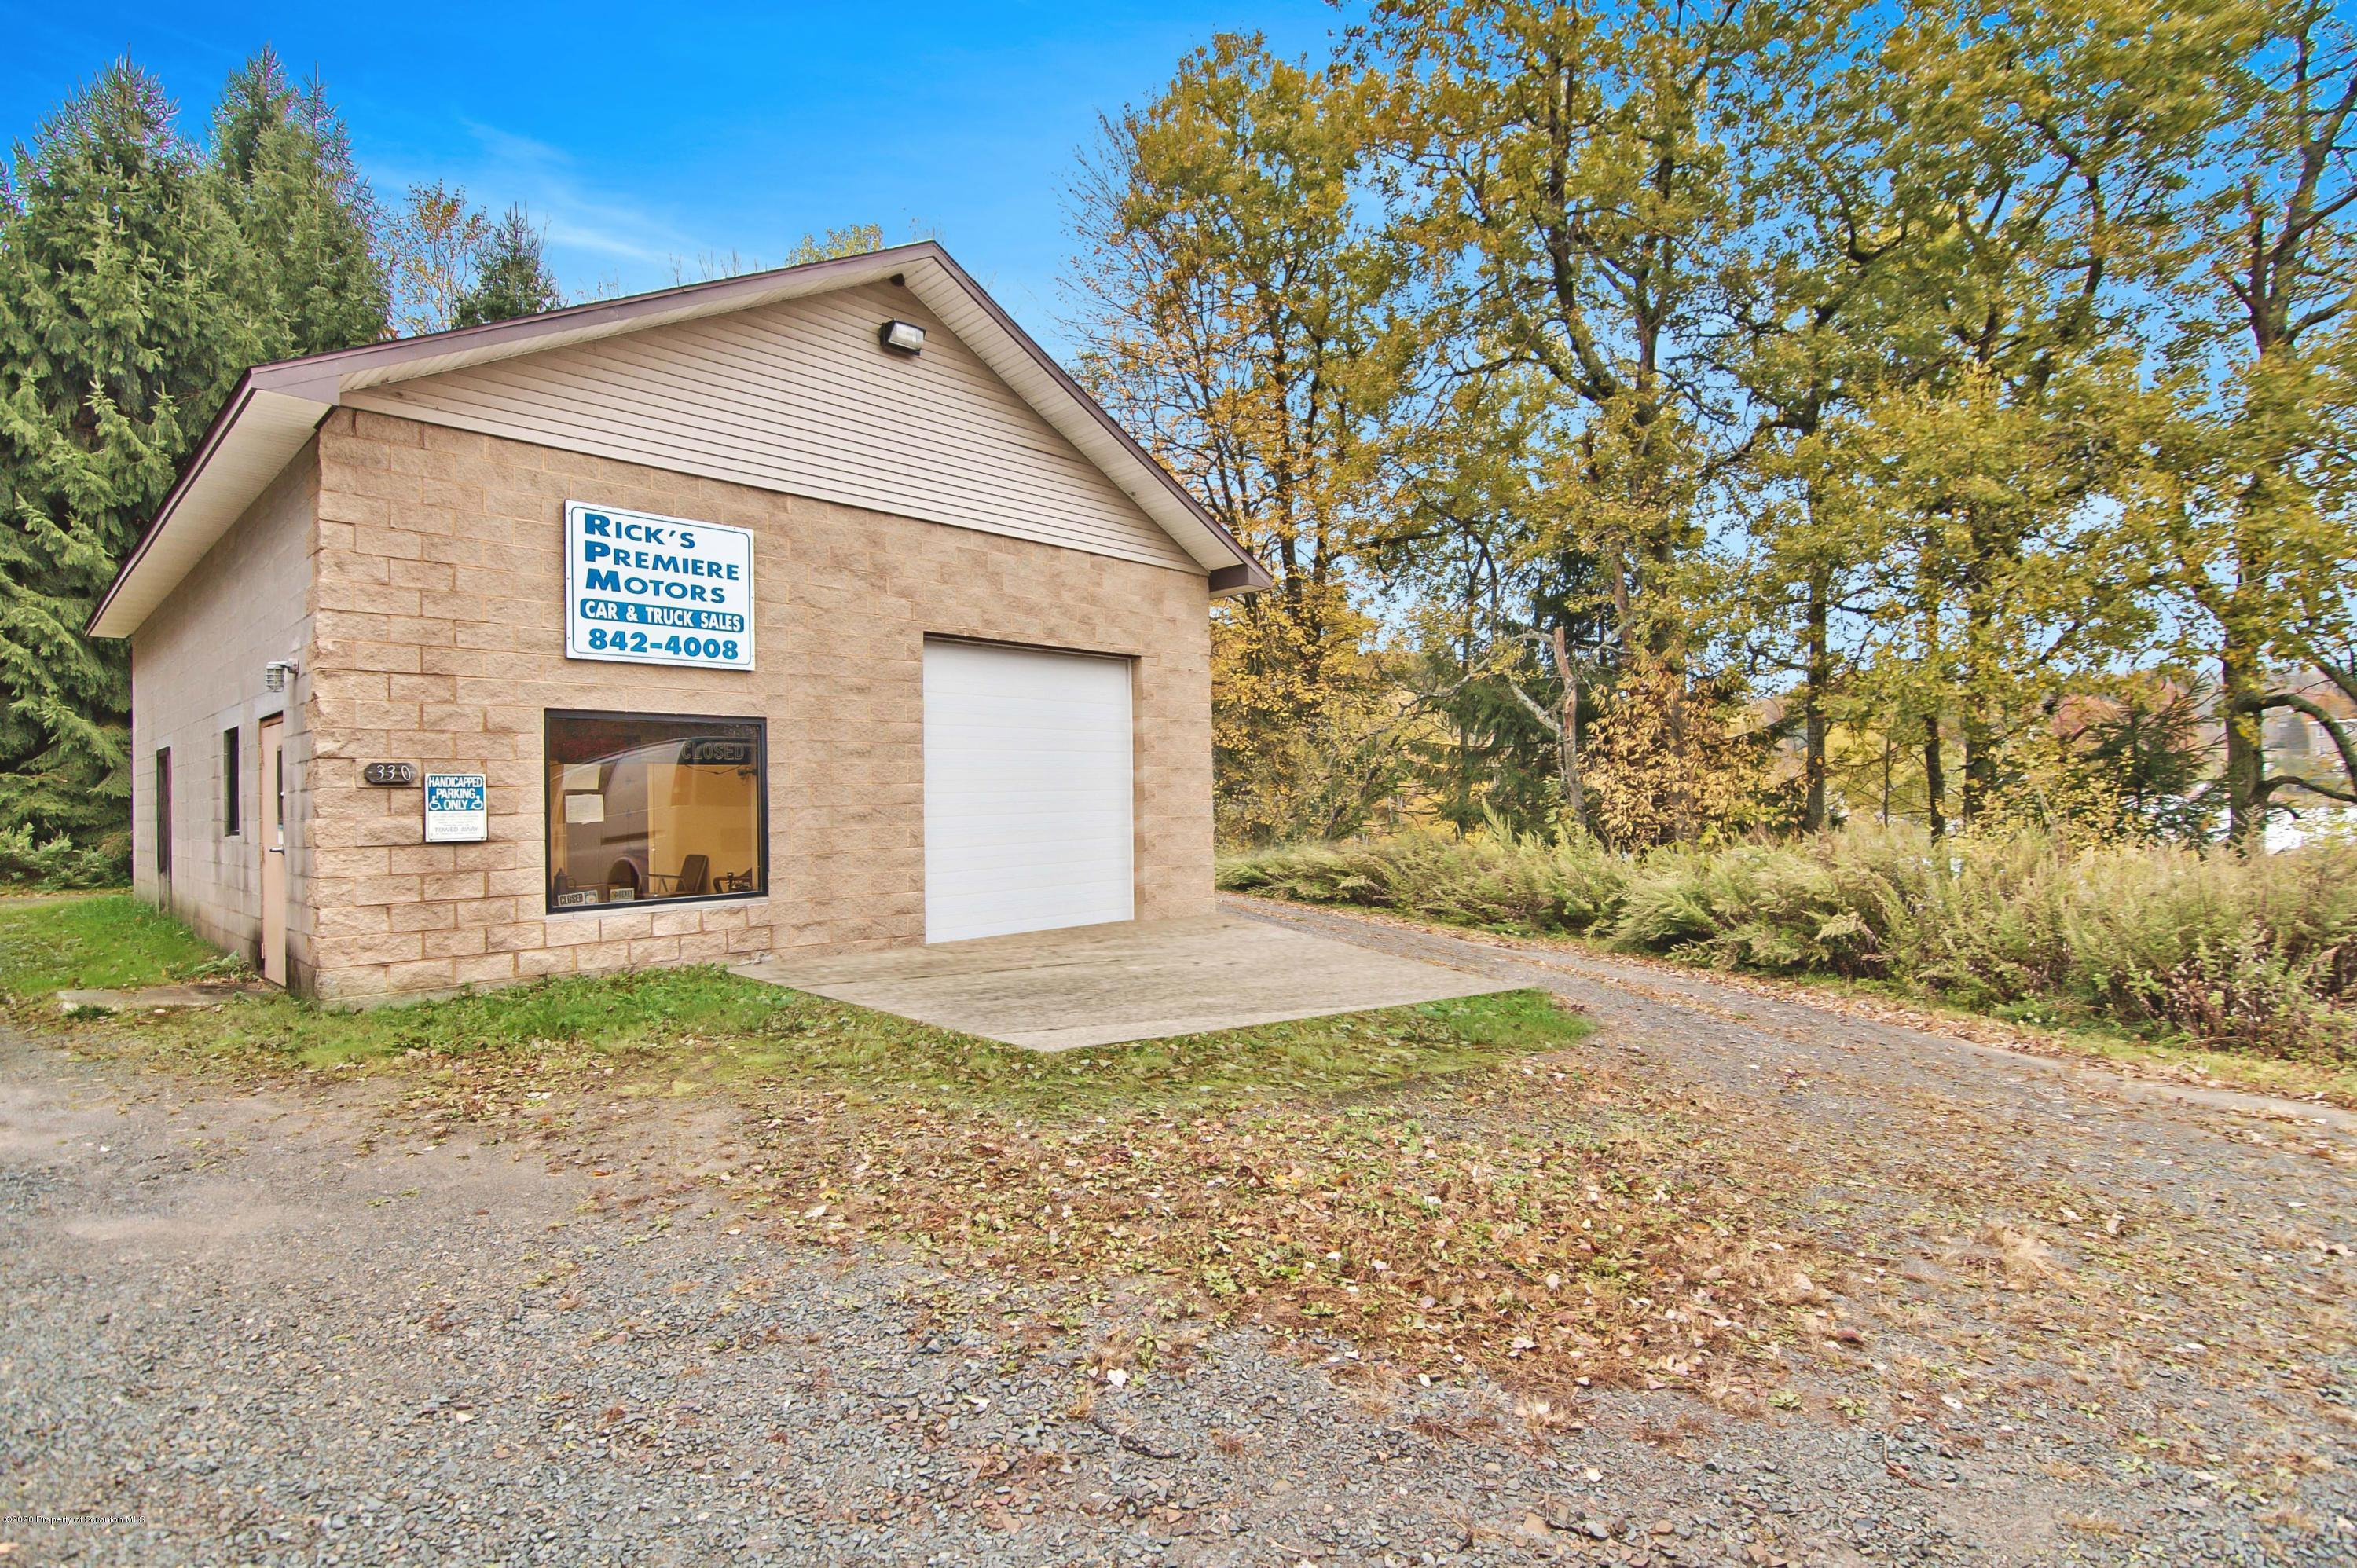 334 S MAIN STREET, Moscow, Pennsylvania 18444, ,Commercial,For Sale,S MAIN,21-3299